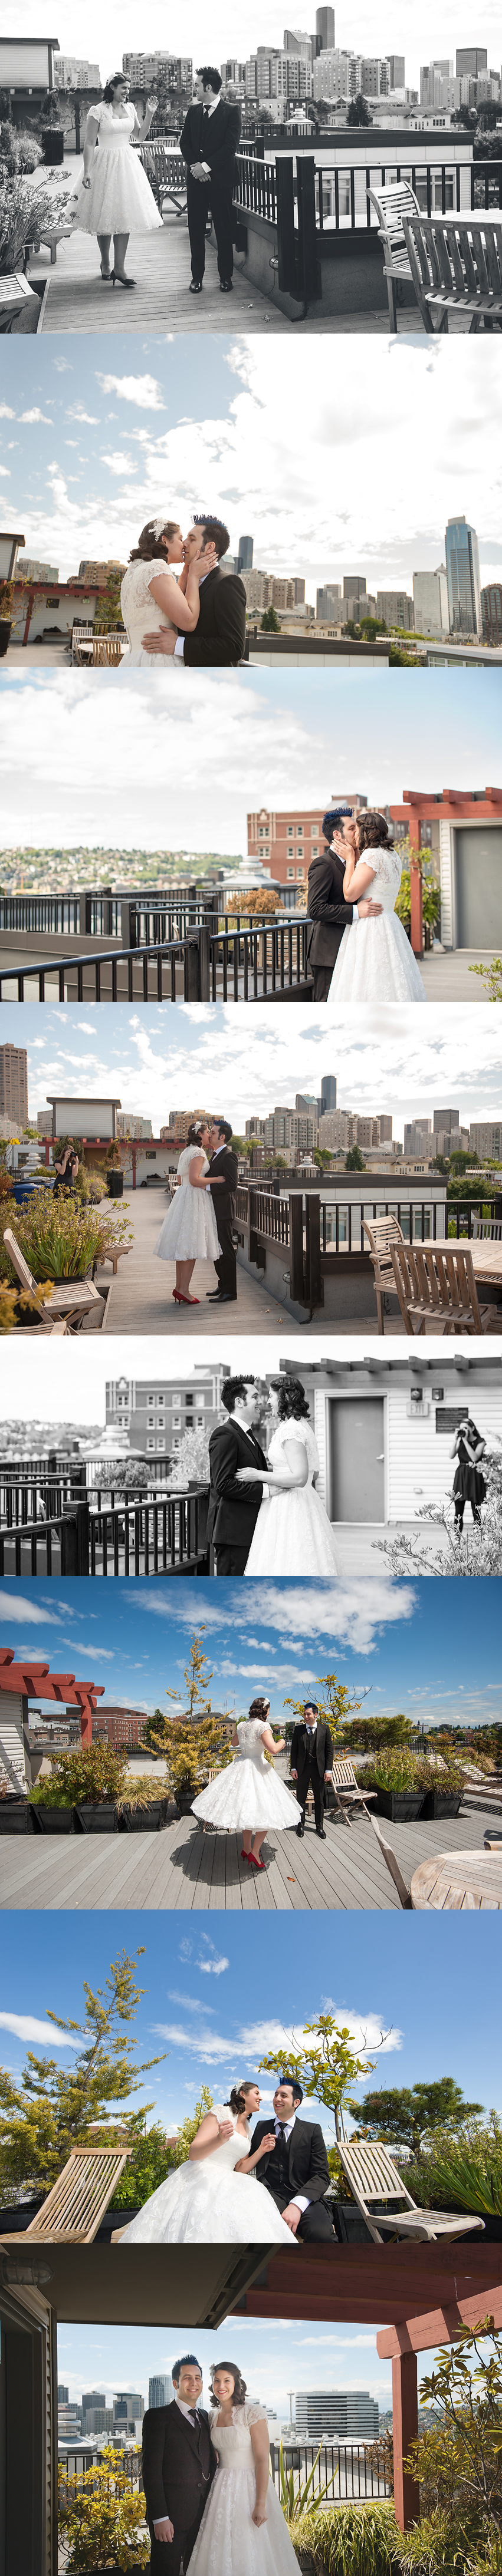 TACOMA WEDDING PHOTOGRAPHY